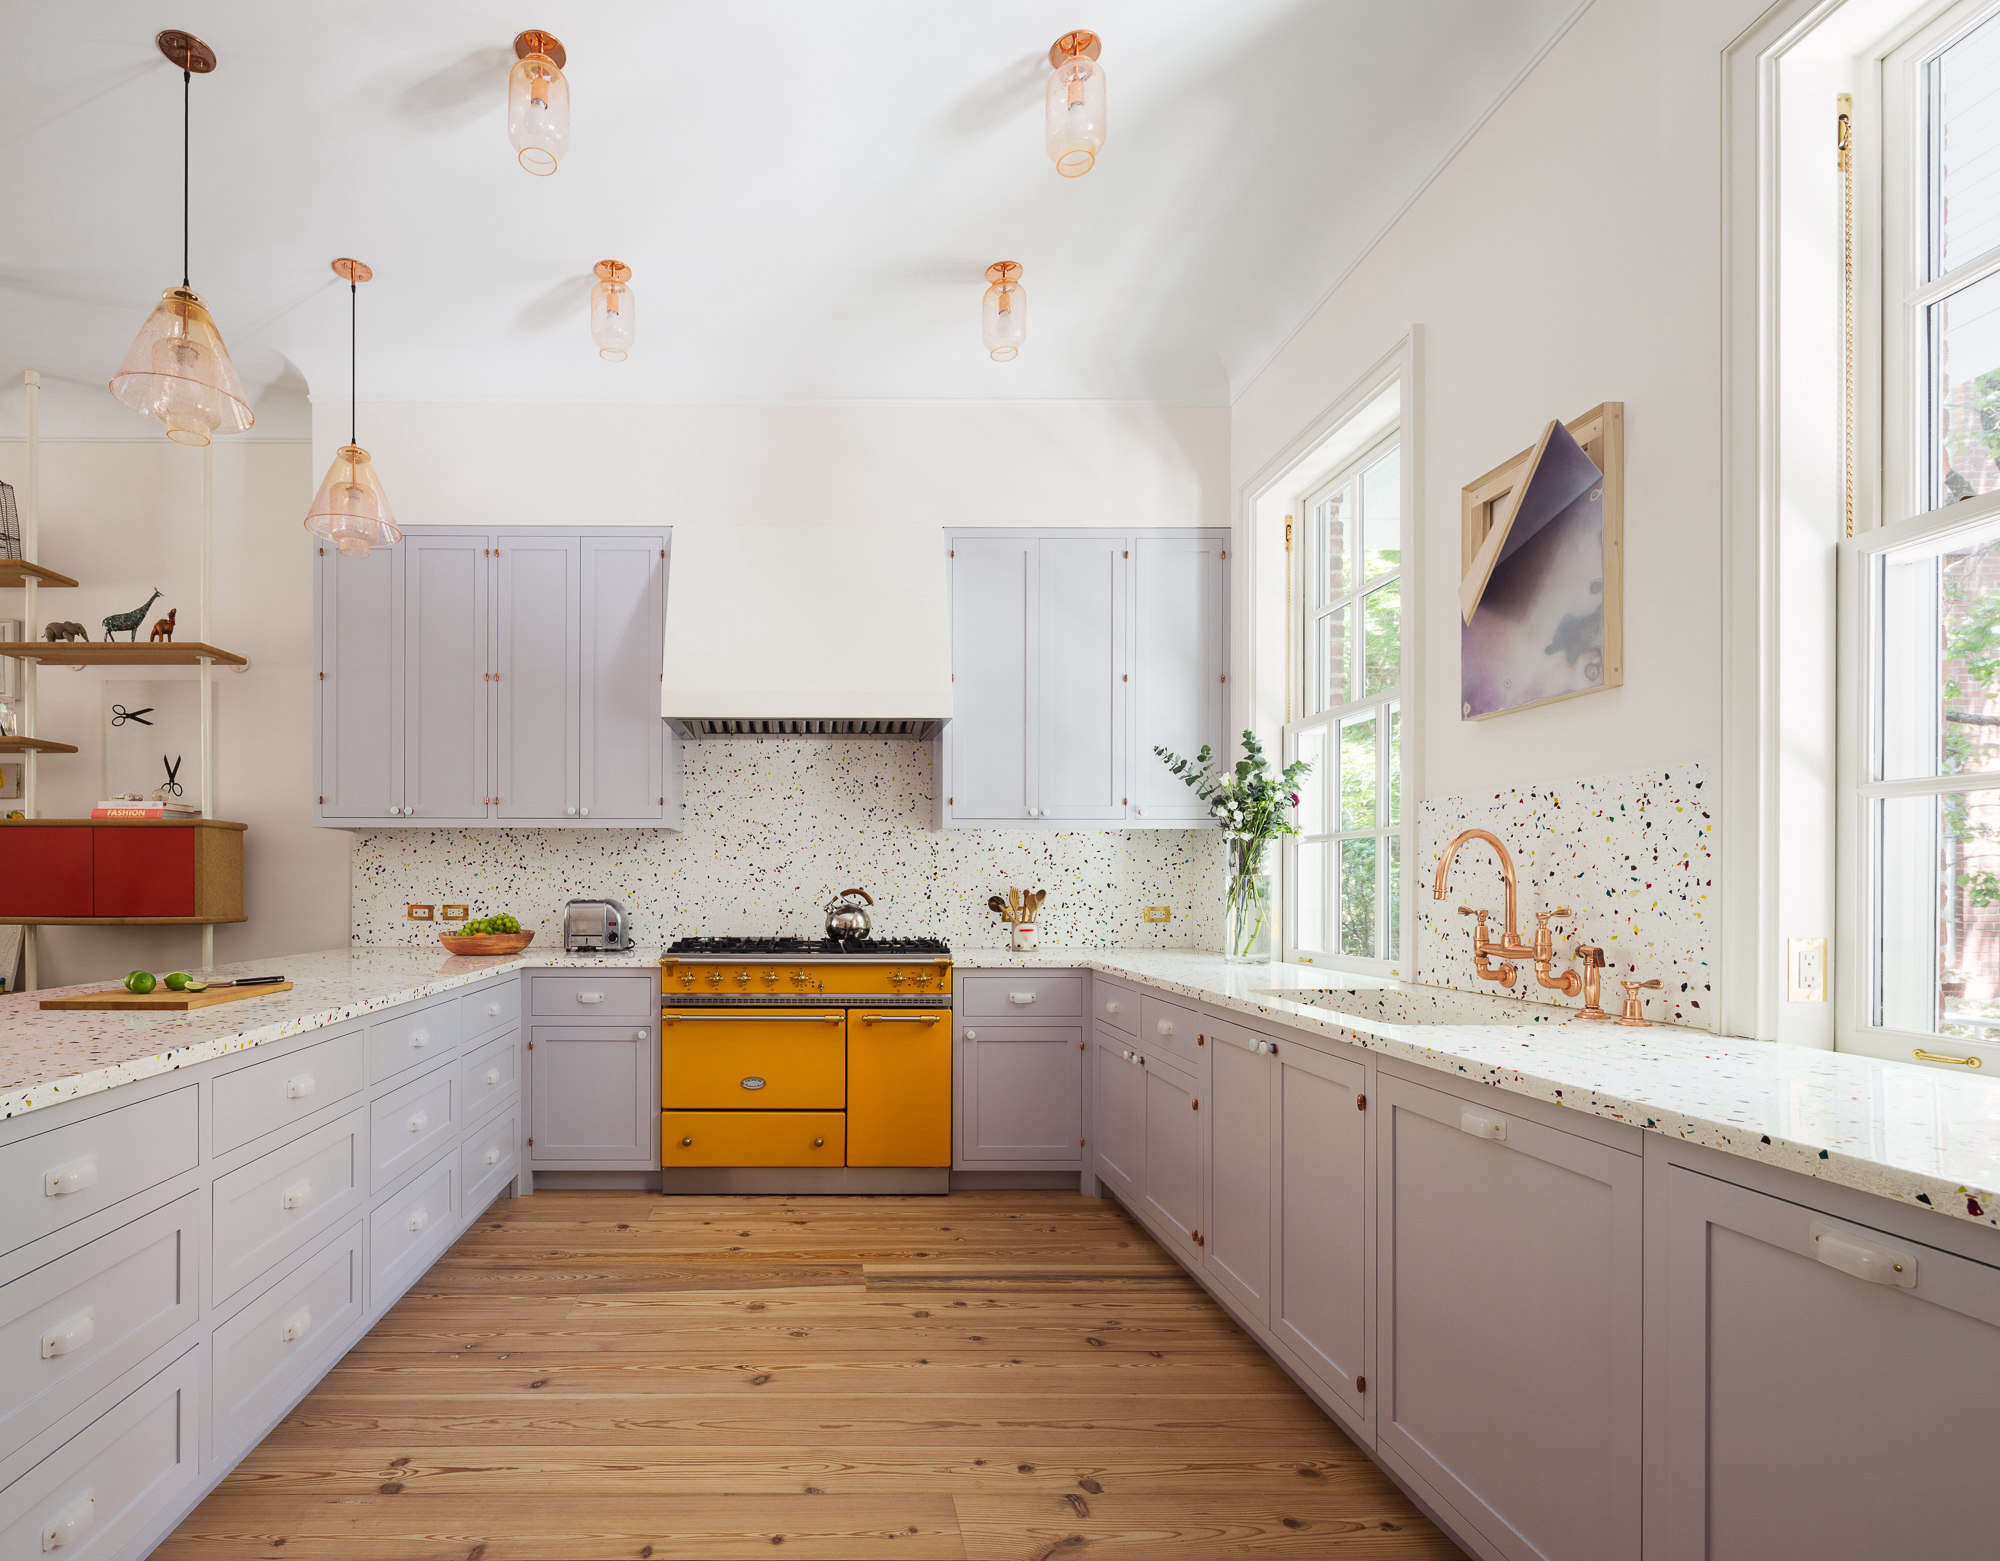 Steal This Look: A Courageously Colorful Kitchen for a New York ...